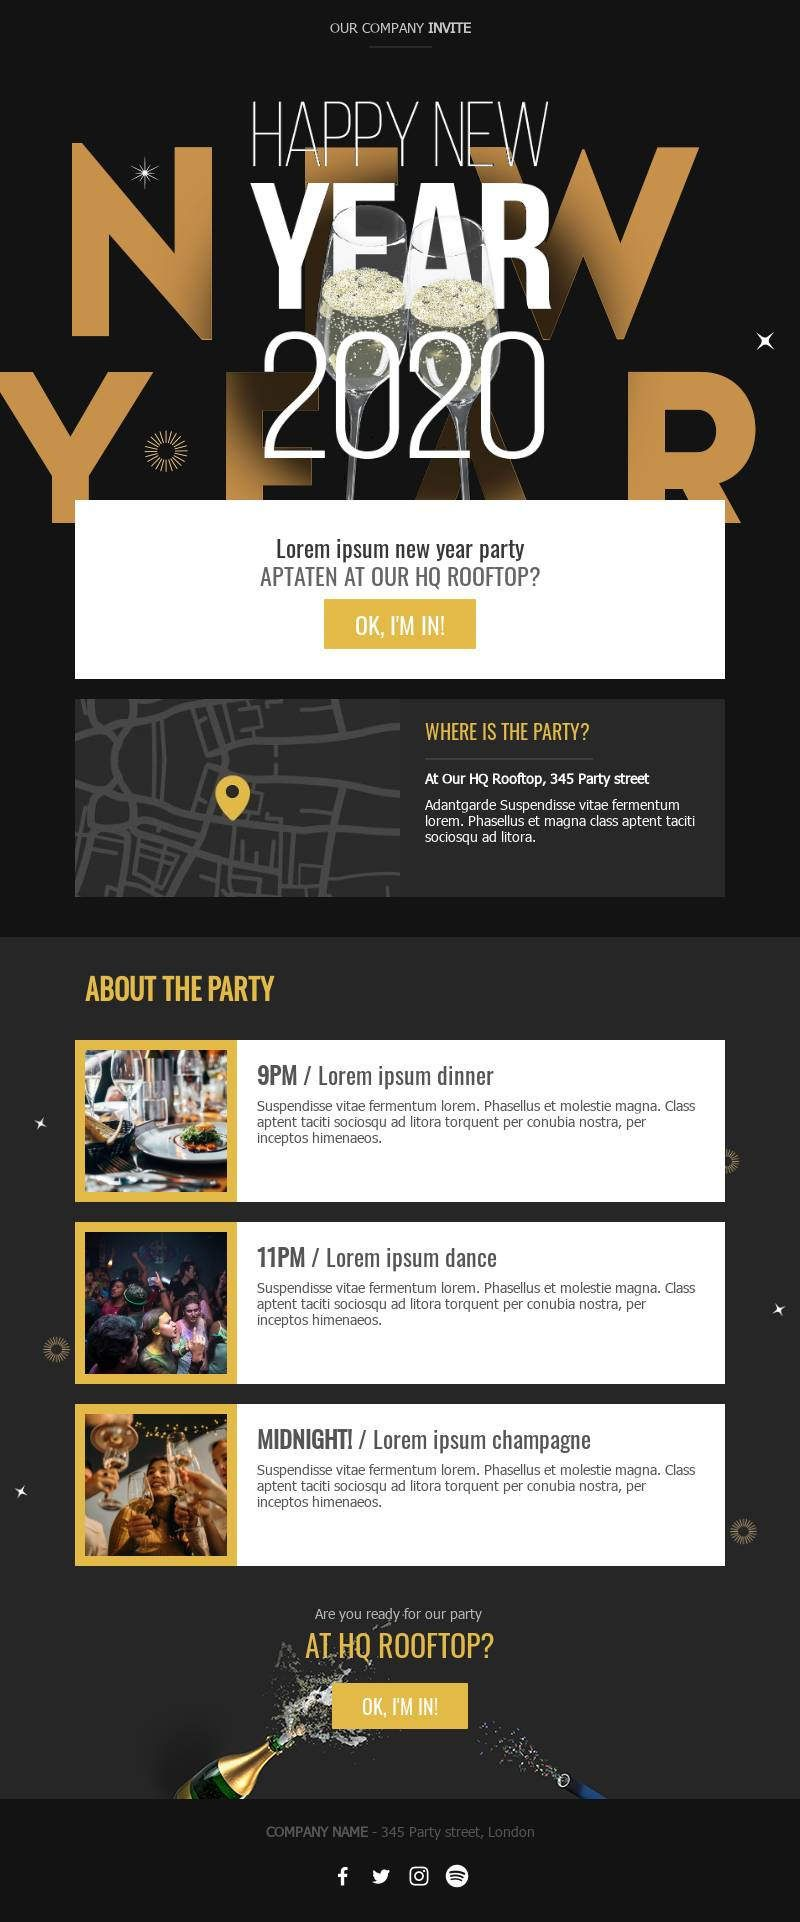 Template Bee Free Email Template Design Email Templates New Year Designs